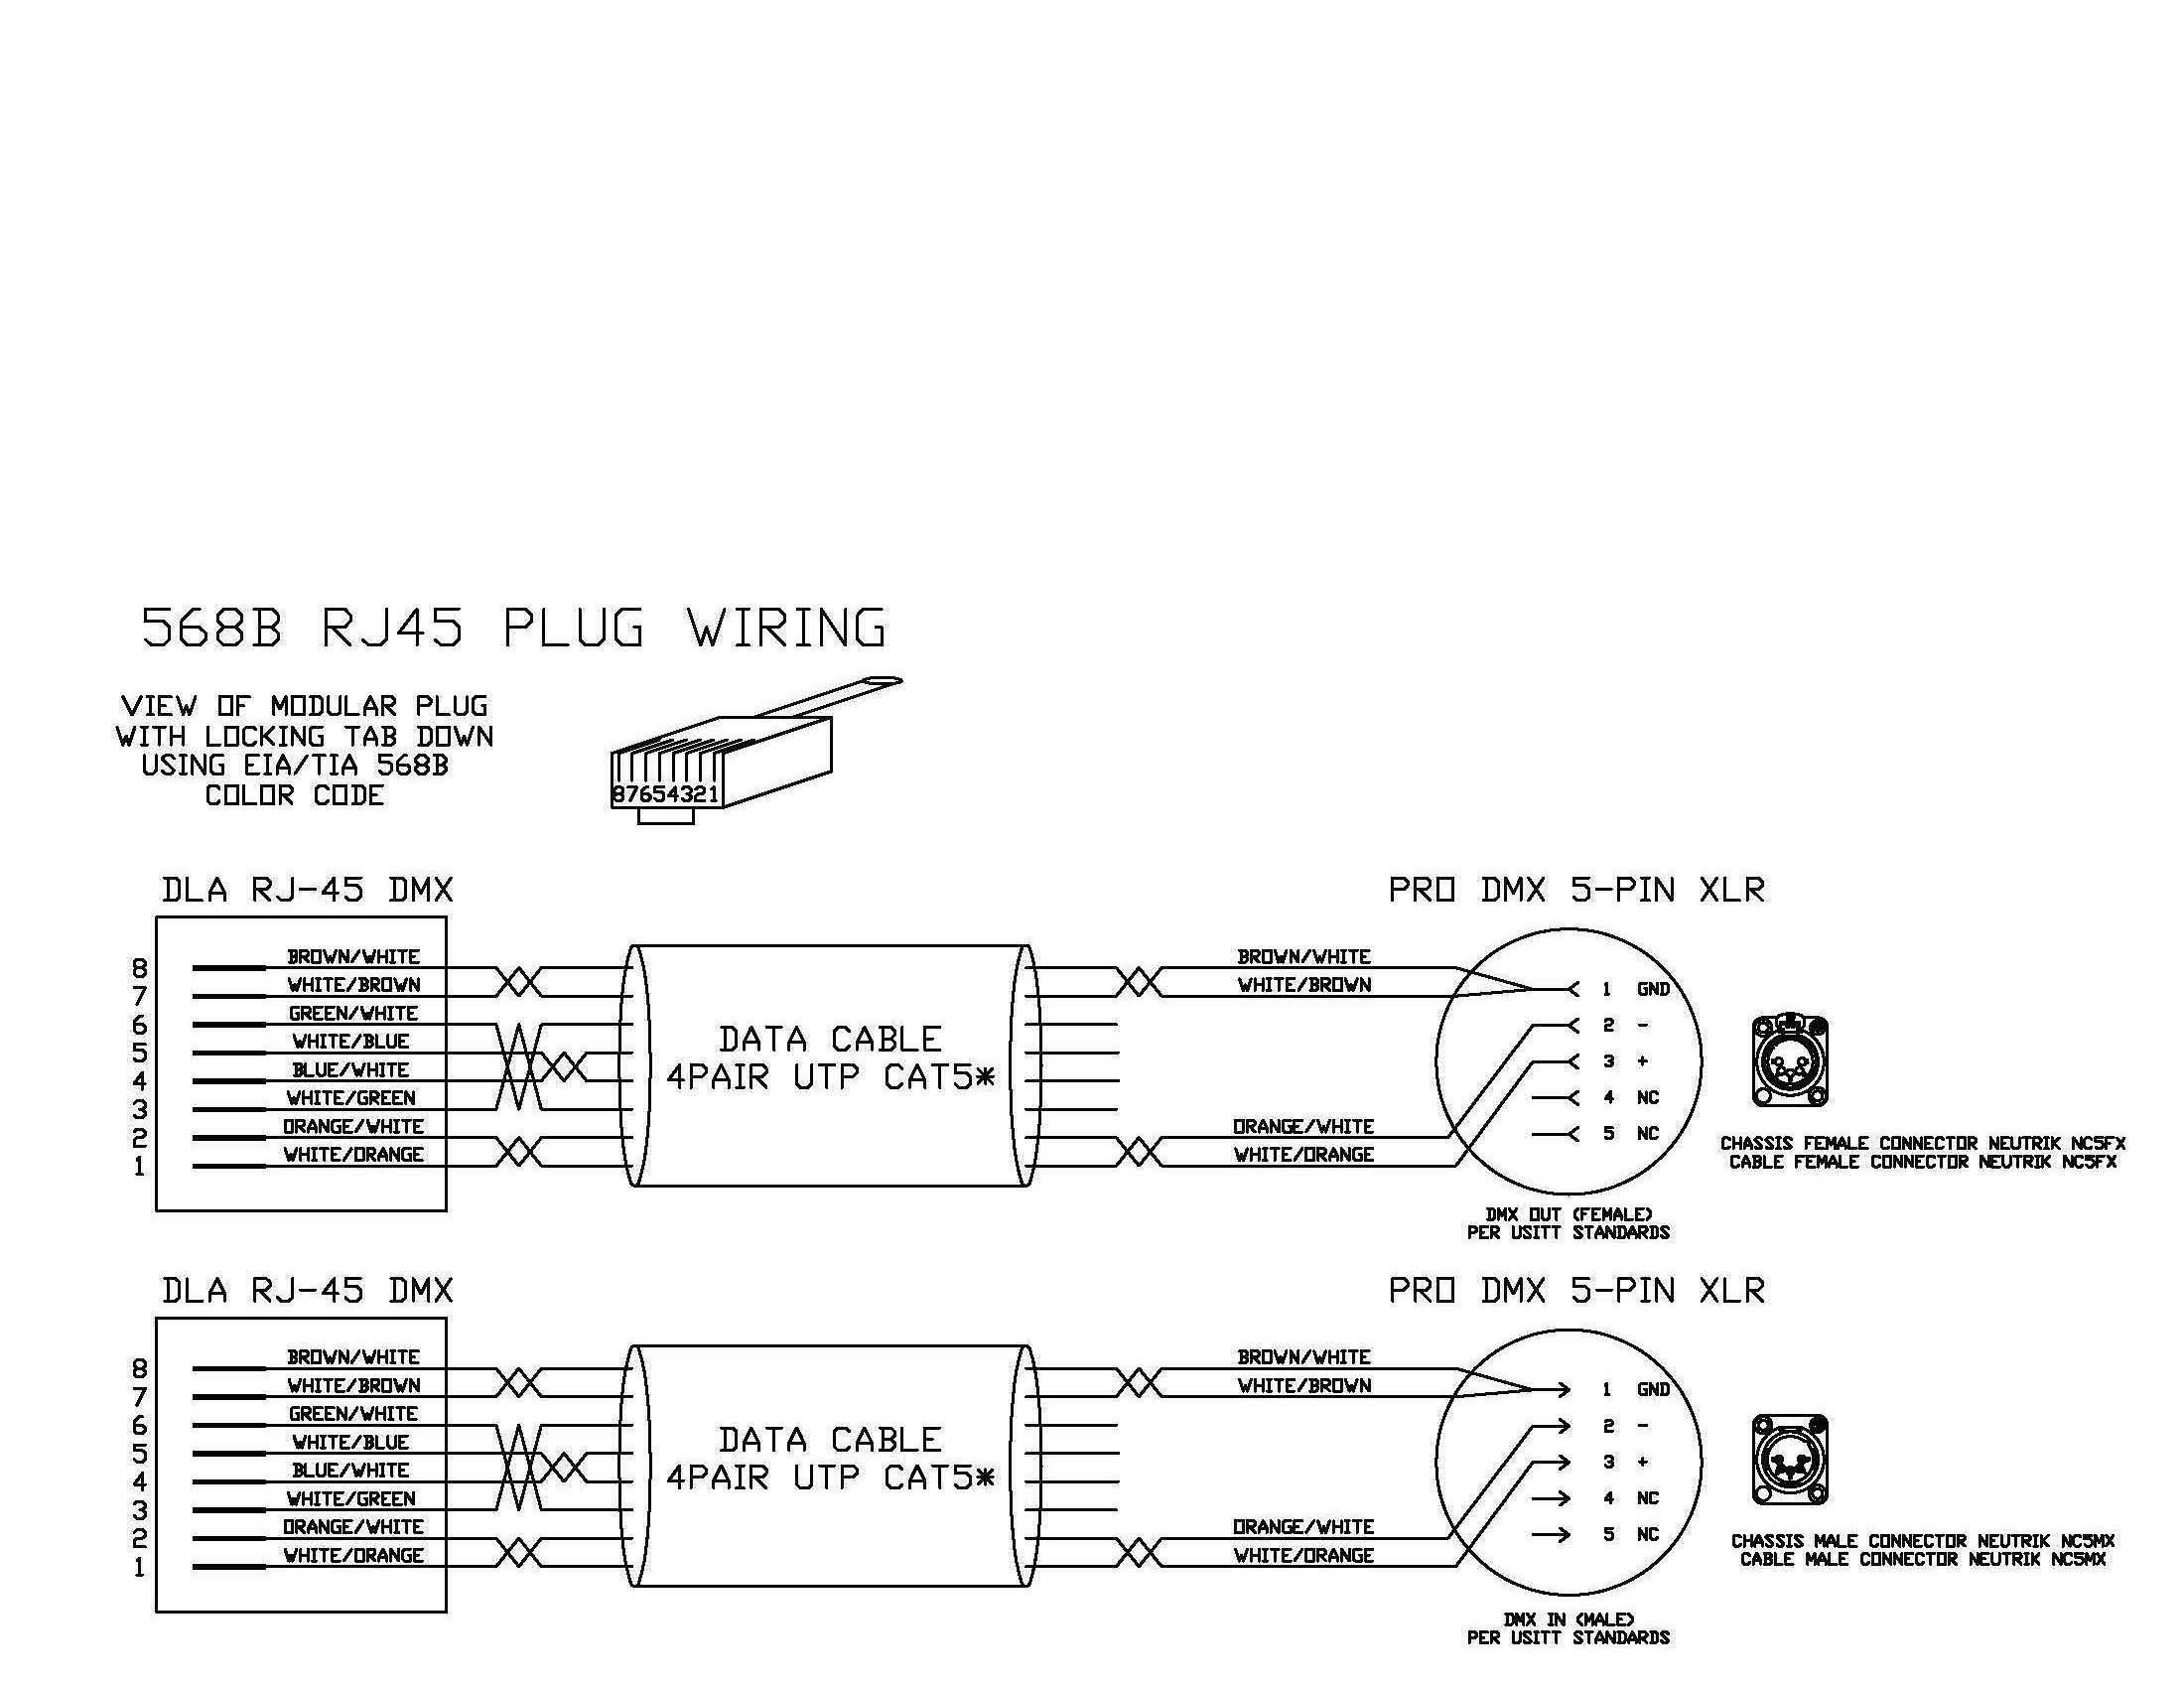 rj45 plug wiring diagram land rover discovery 1 radio xlr to electrical